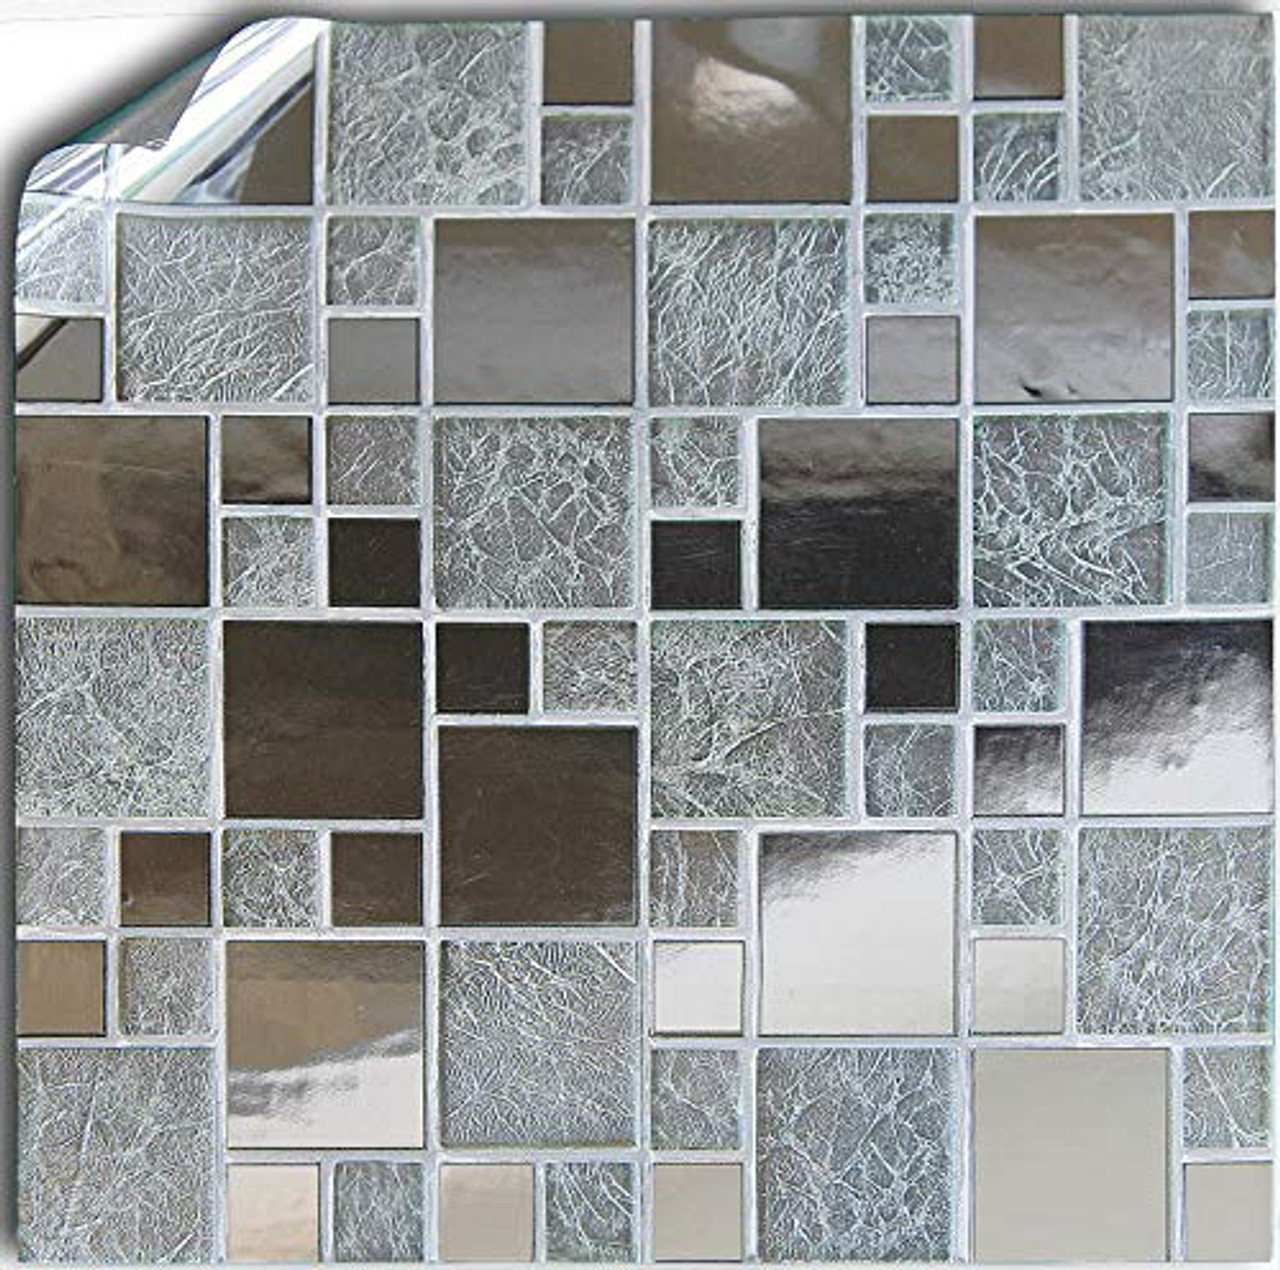 24 Silver Chrome Kitchen Bathroom Tile Stickers For 15cm 6 Inches Square Tiles 2d Printed Tp71 Diy Kitchen Backslash Decor Ideas Tile Style Decals No Middleman